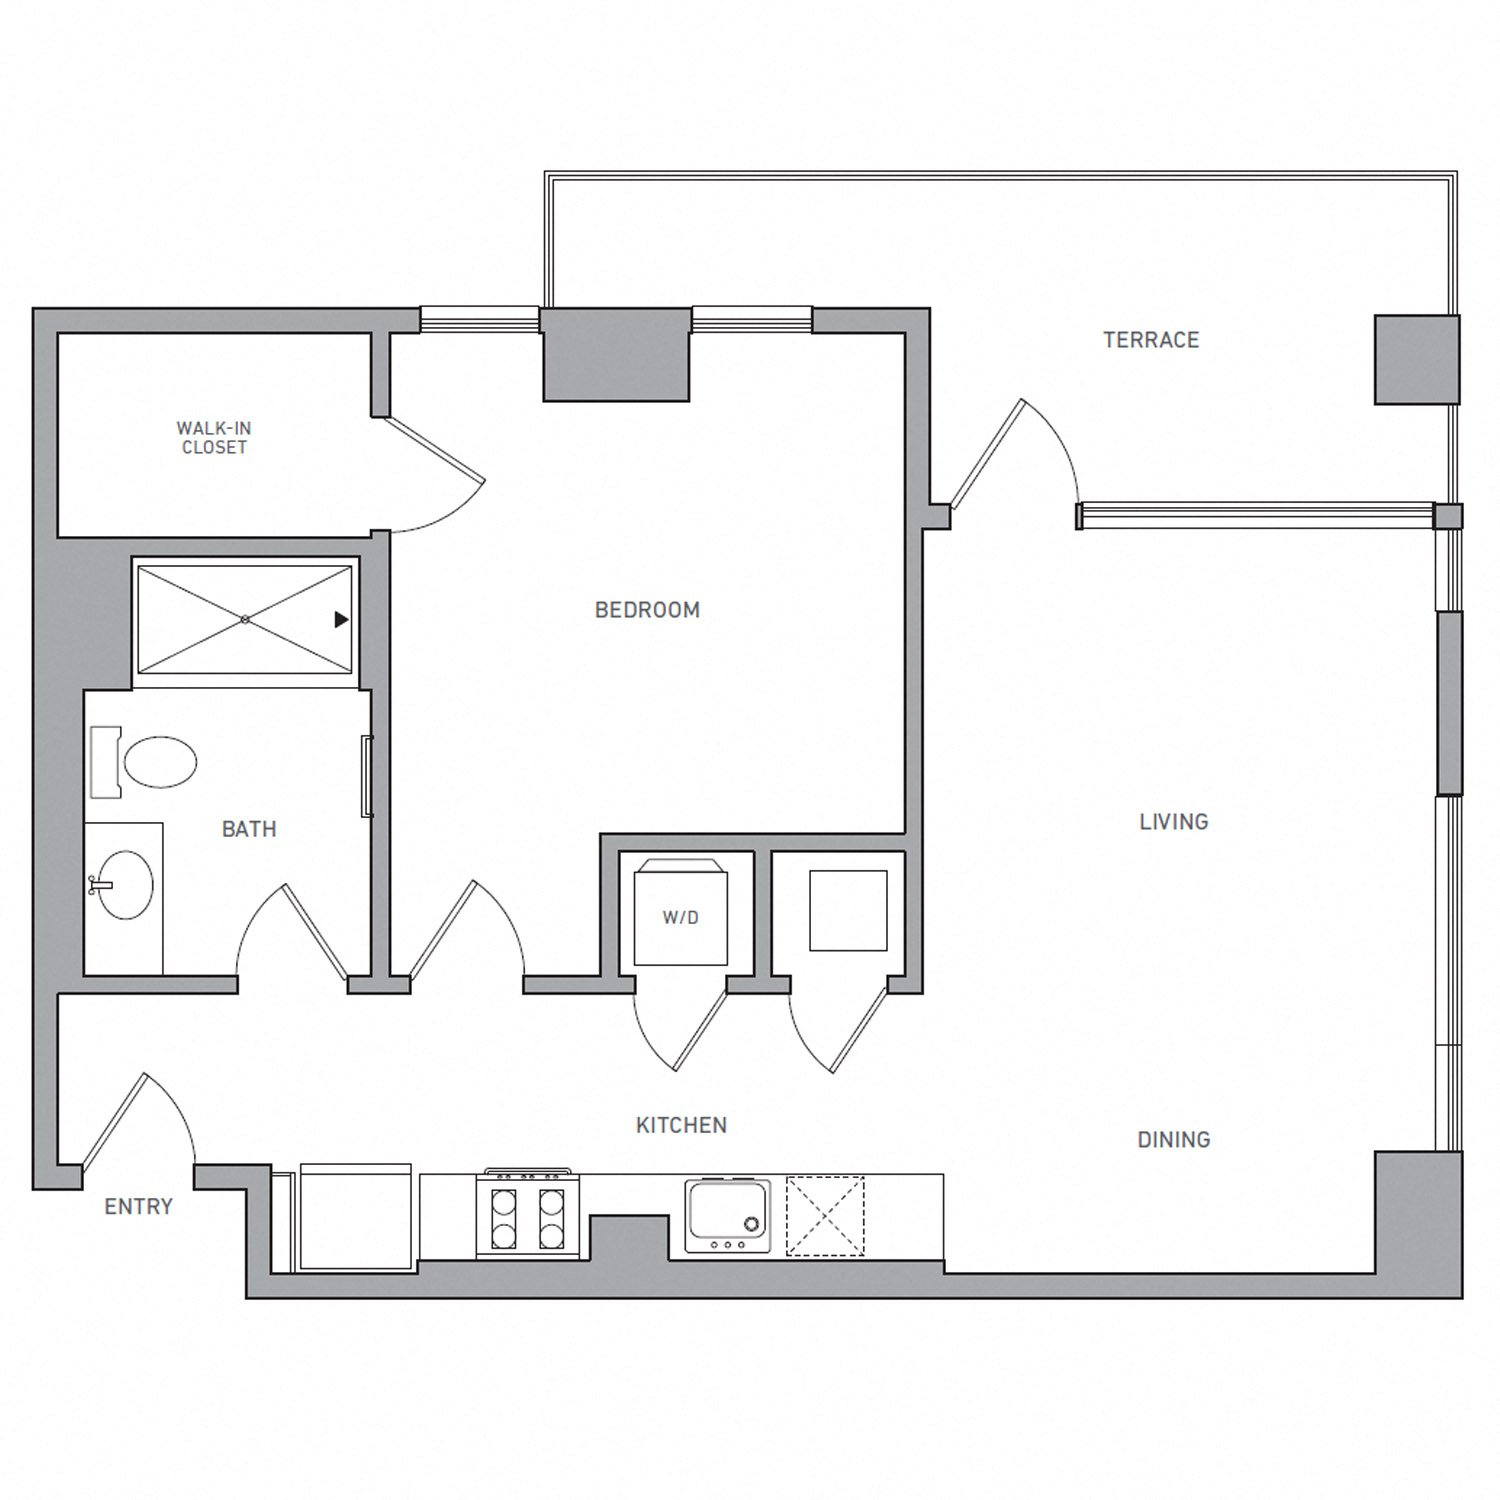 A Five floor plan diagram. One bedroom, one bathroom, an open kitchen and living area, a terrace, and a washer dryer.